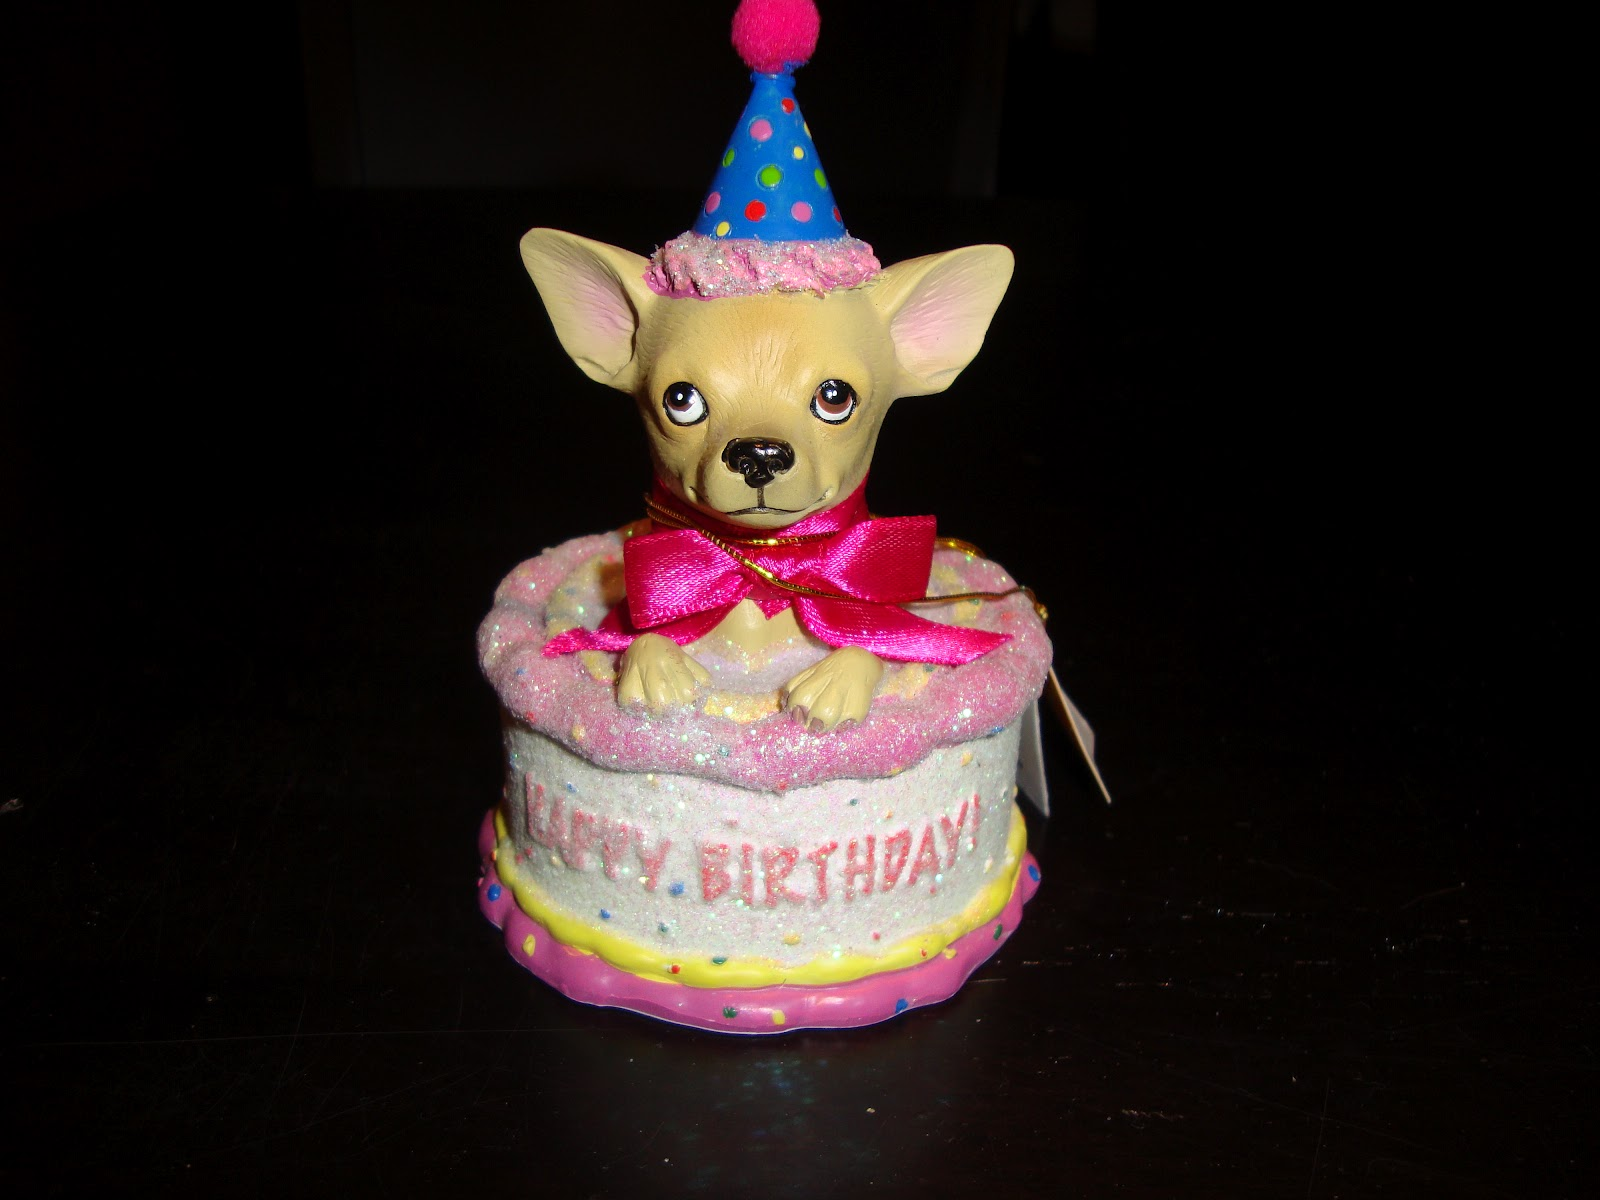 Fabulous 9 Chihuahua Birthday Cakes With Letter B On It Photo Chihuahua Funny Birthday Cards Online Unhofree Goldxyz